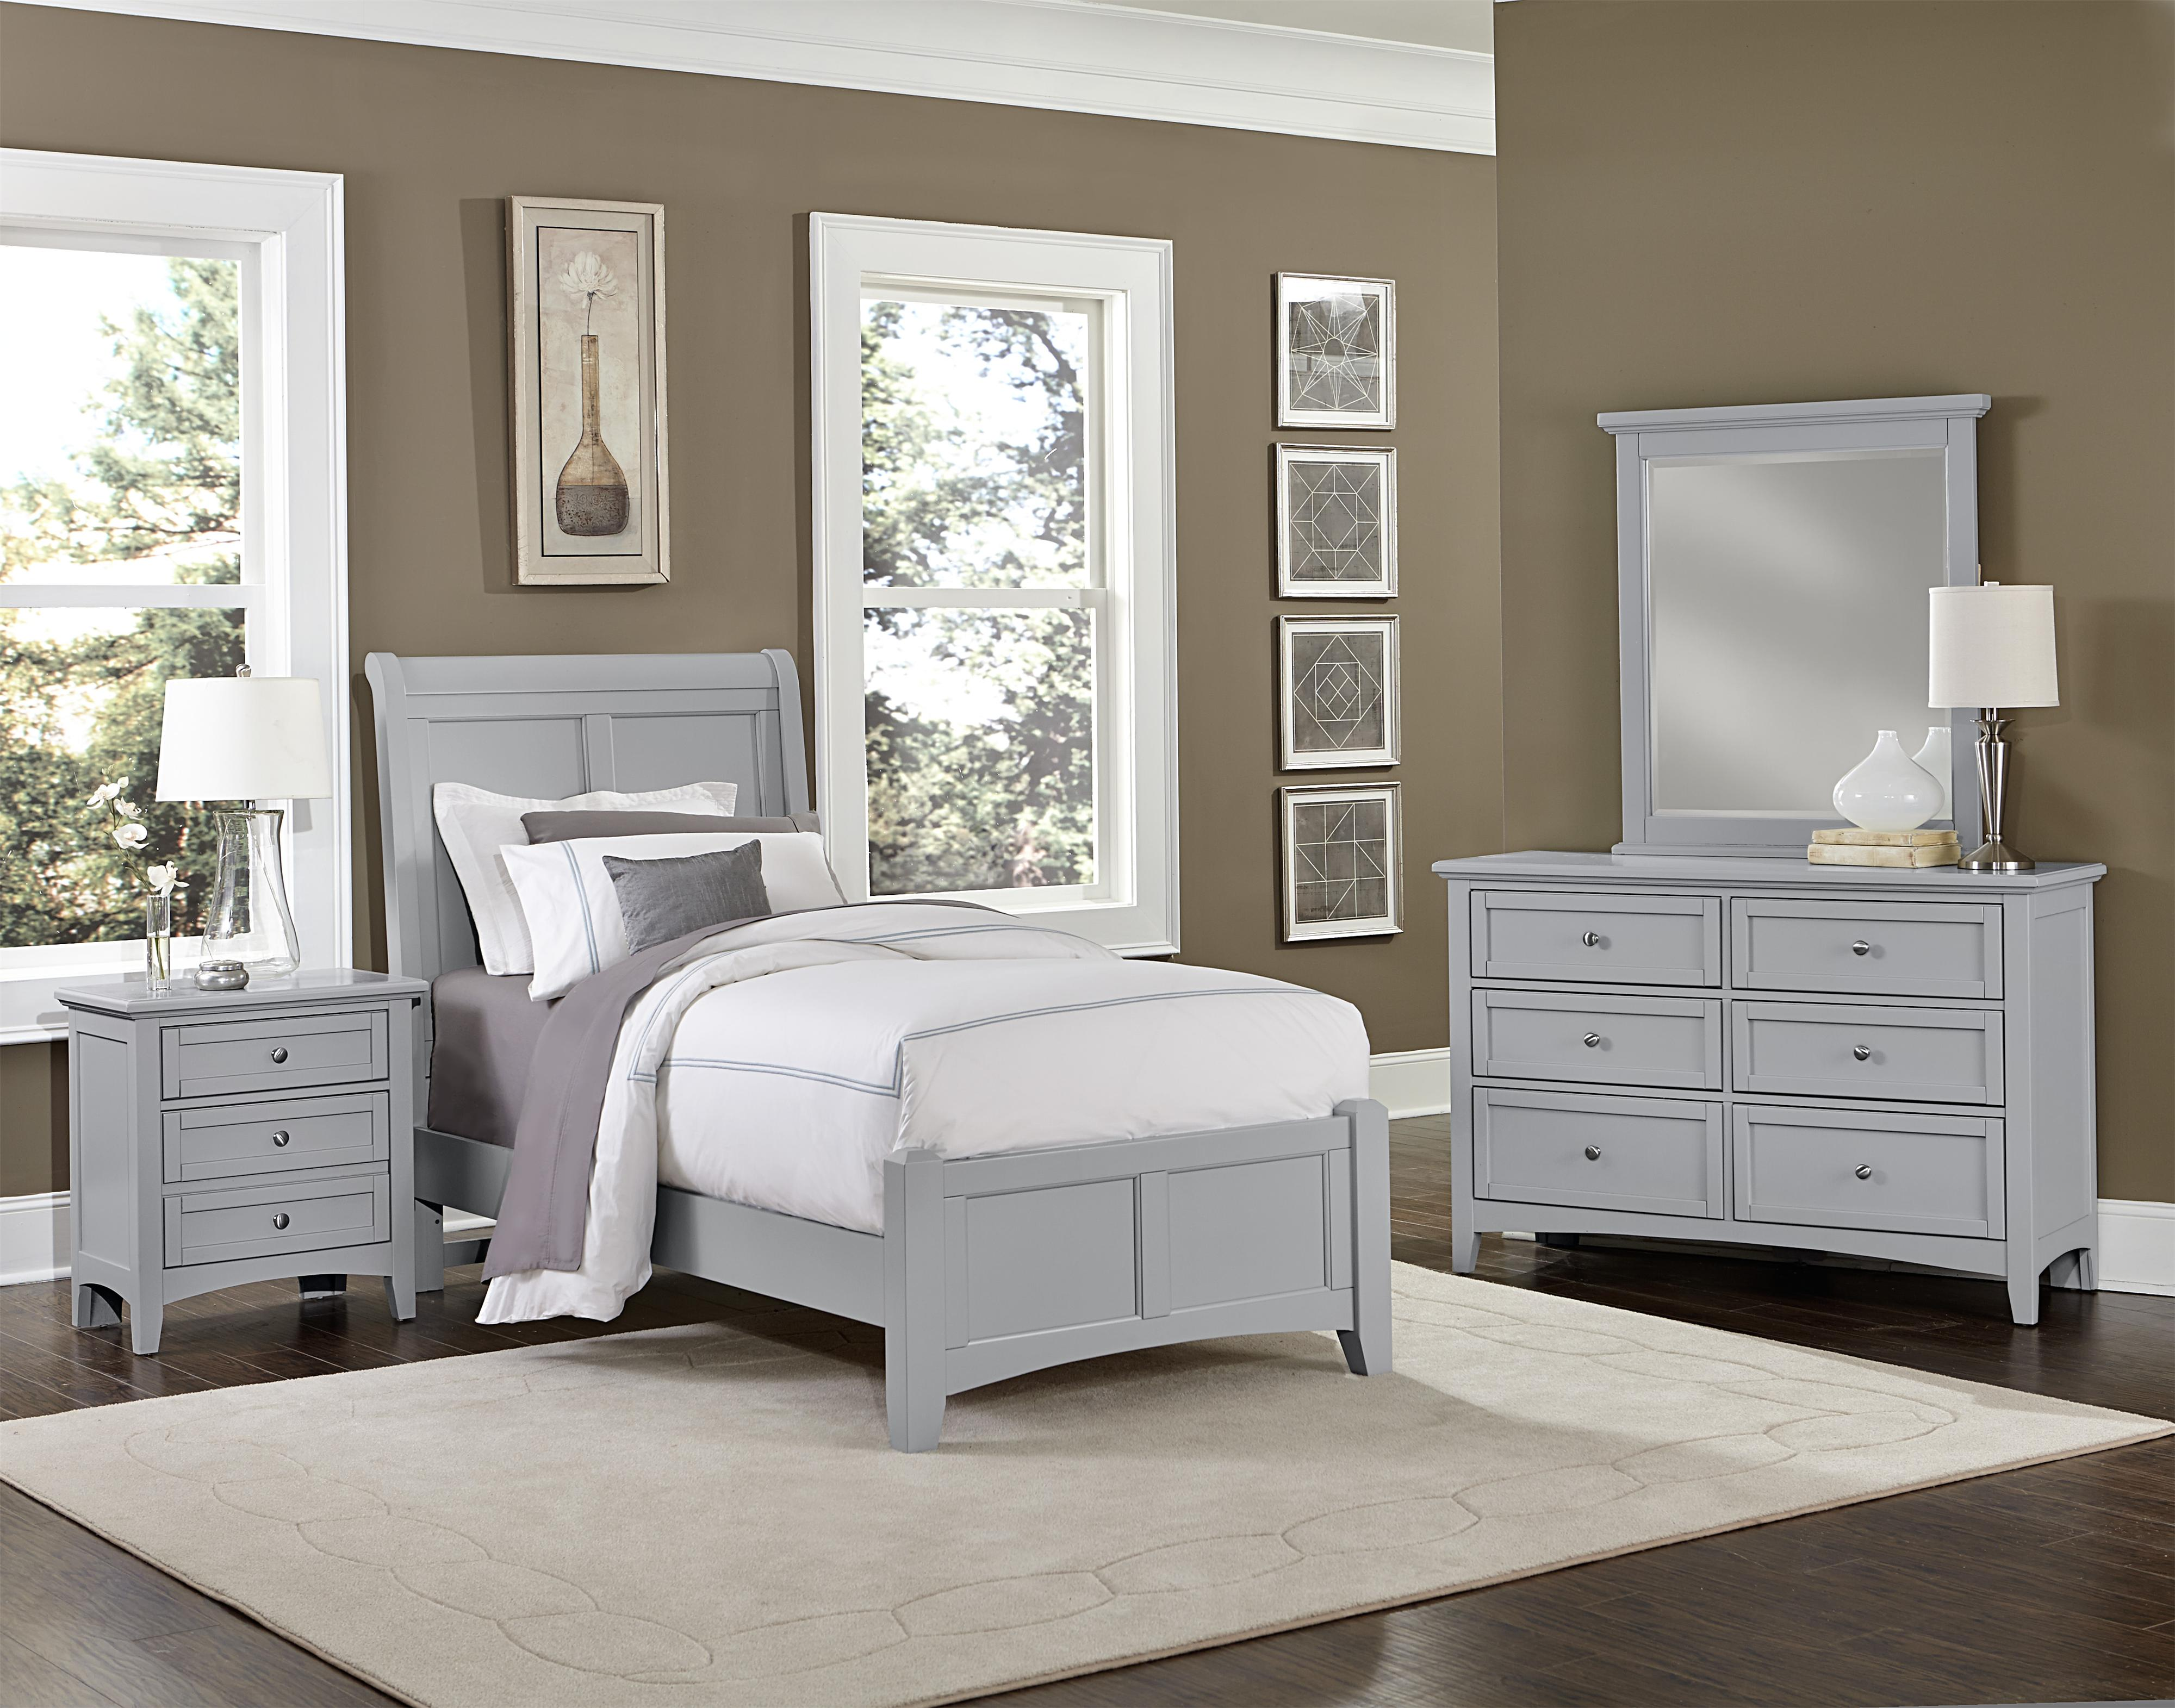 Vaughan Bassett Bonanza Twin Sleigh Bed With Low Profile